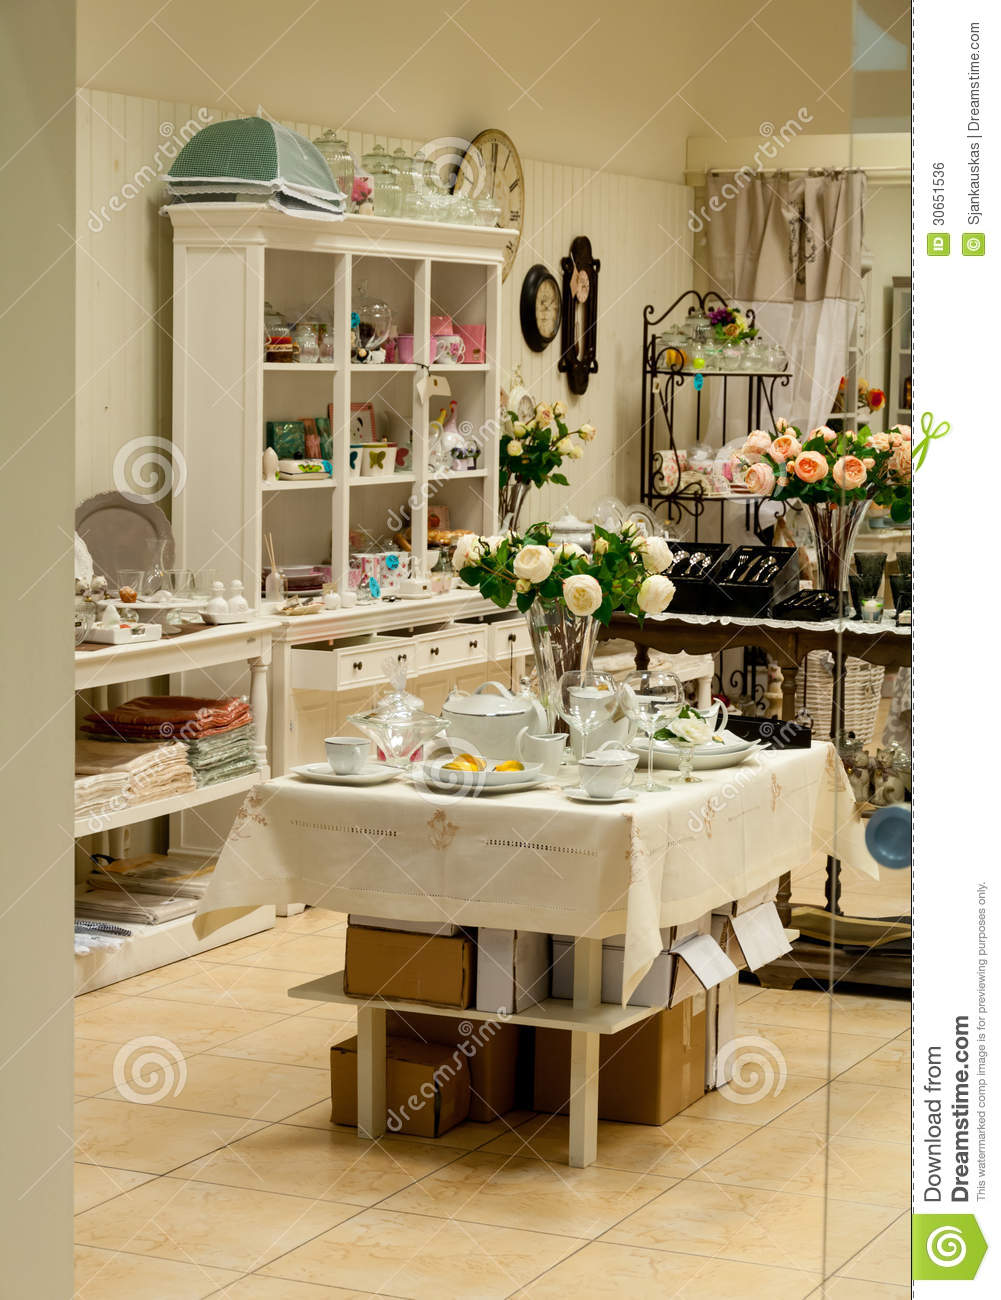 Home decor and dishes shop royalty free stock image Shopping for home